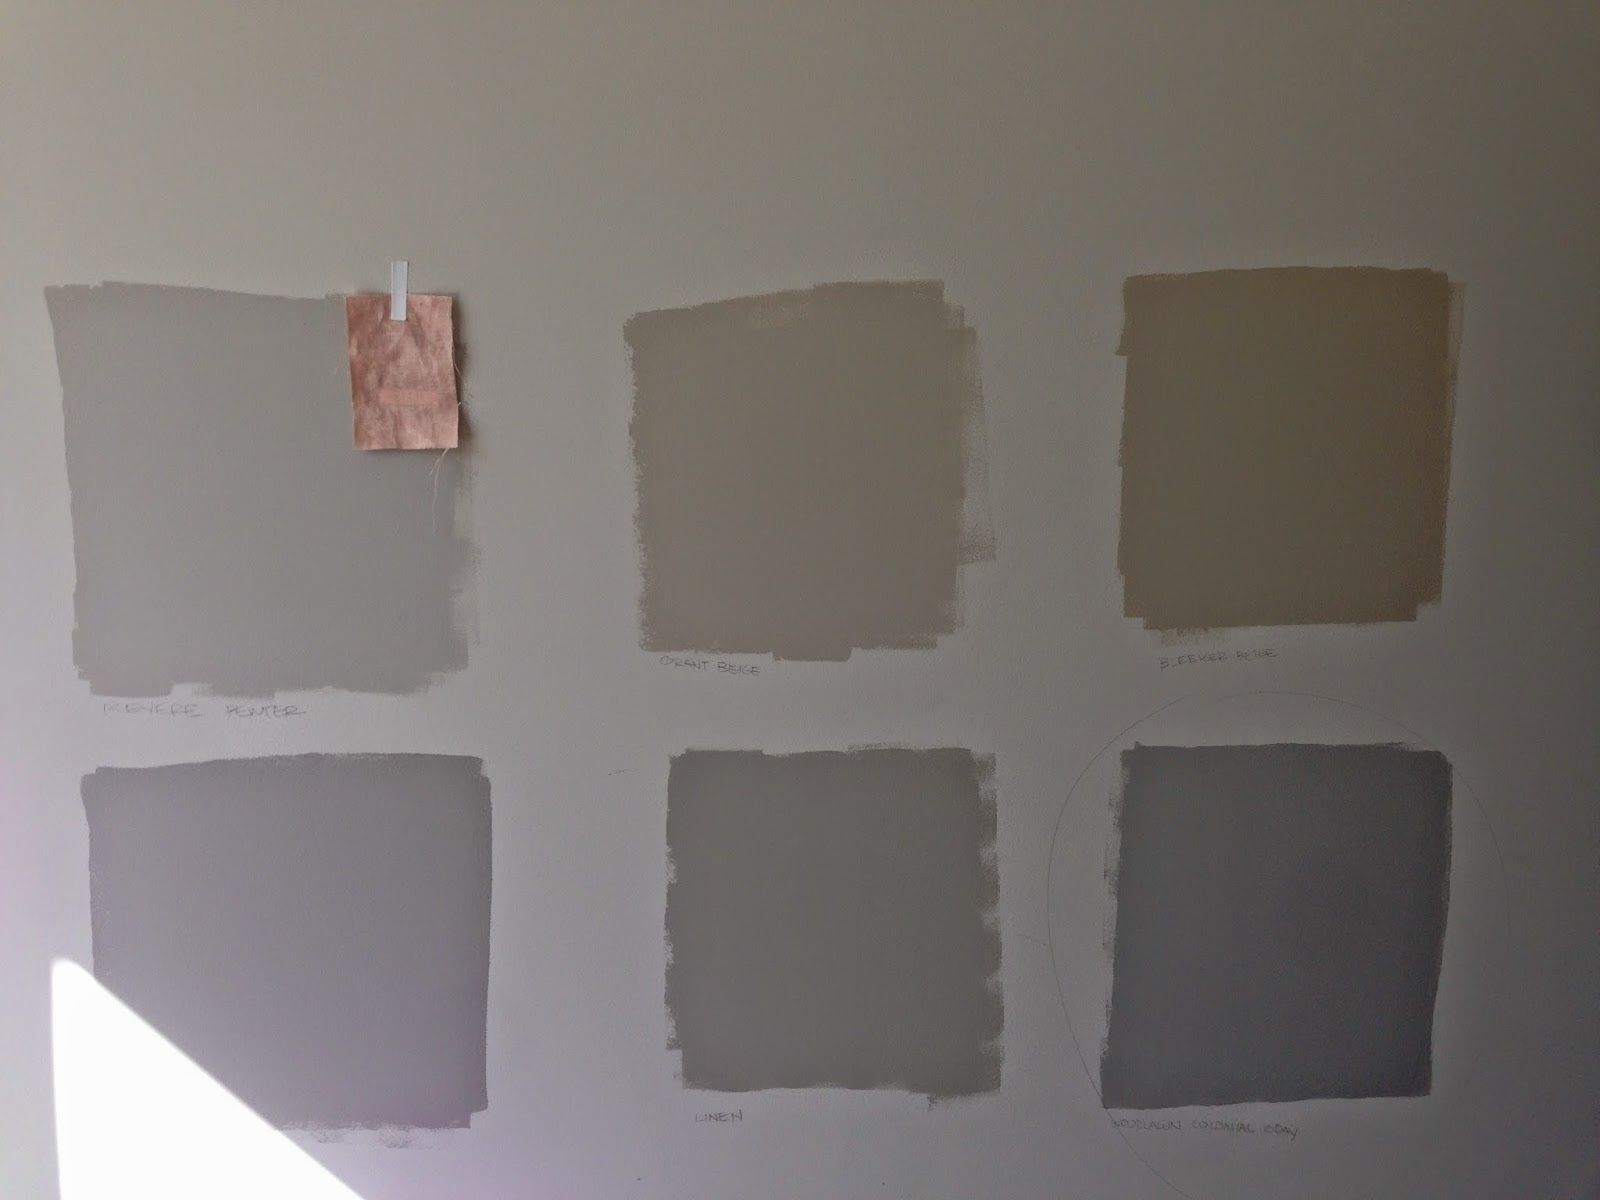 The Samples We Tested Top Revere Pewter, Grant Beige, Bleeker